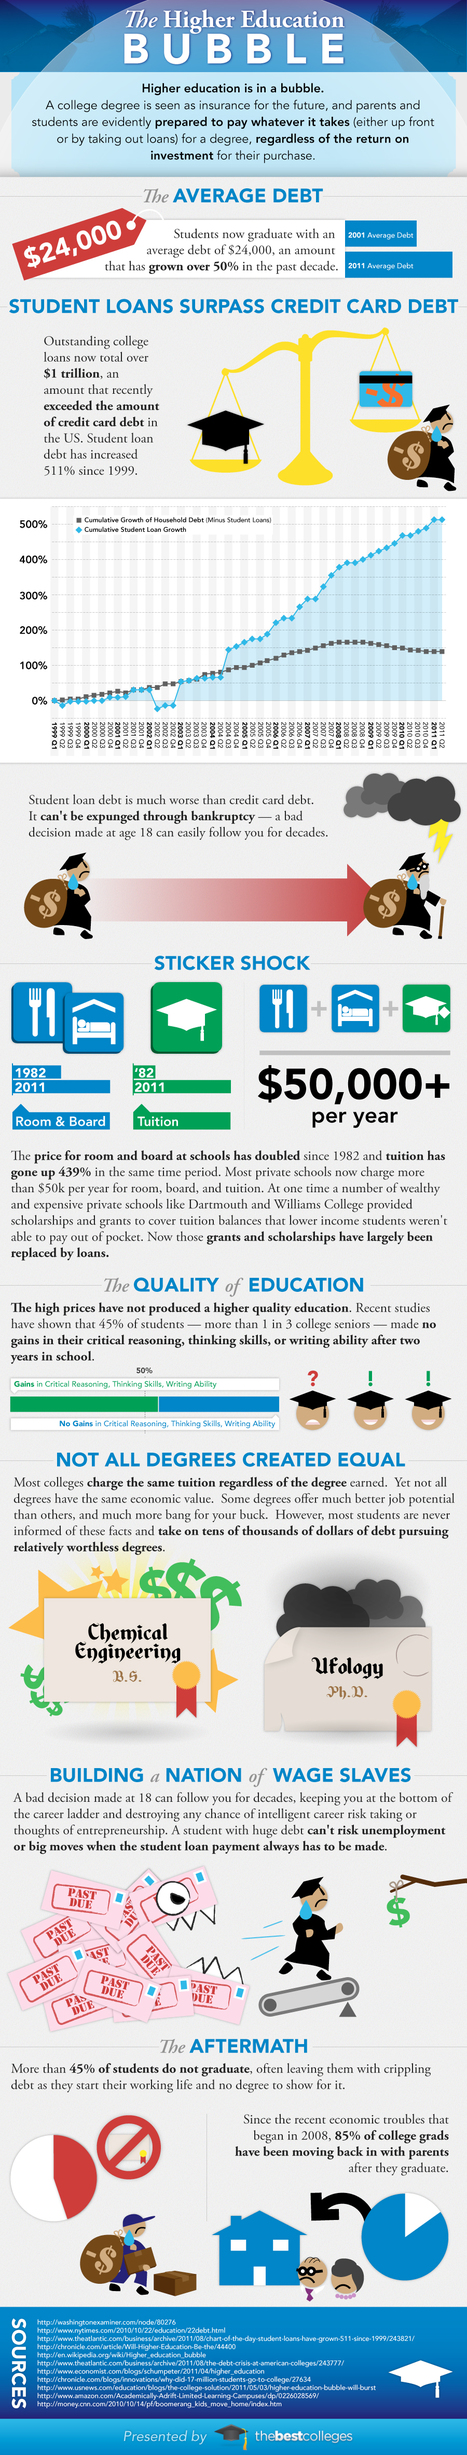 The Higher Education Bubble [infographic] | Educational Technology in Higher Education | Scoop.it